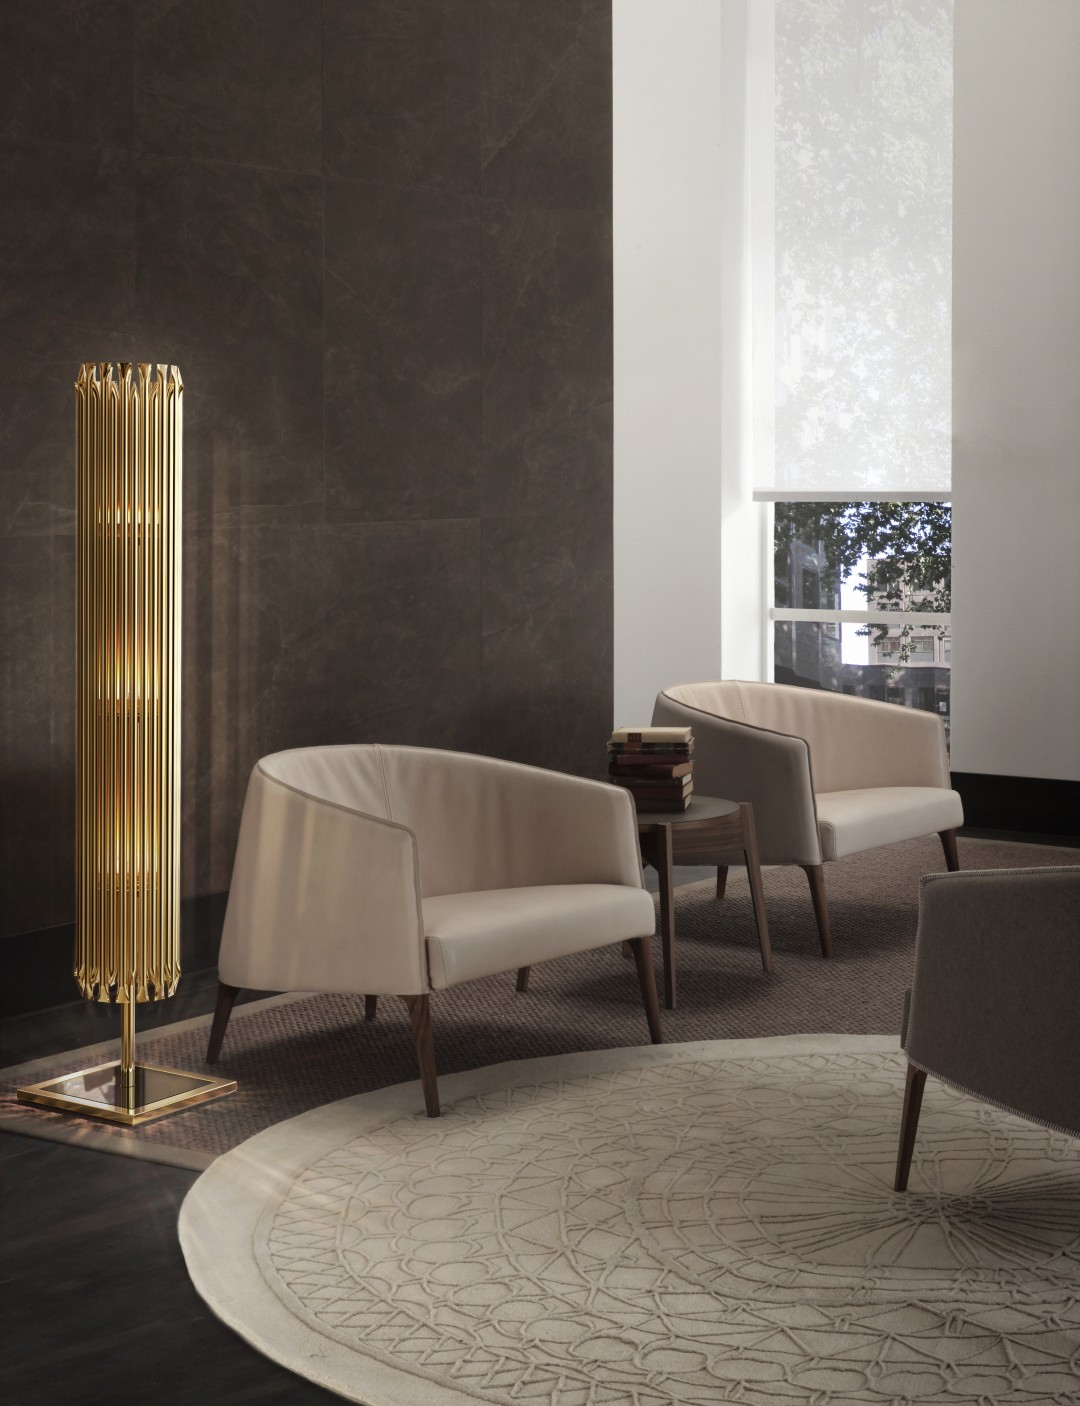 contract collection Contract Collection Offers These Floor Lamps For Your Projects! matheny floor ambience 01 HR41f1103bdc4d1ee5cf9da98cab9dd6a1